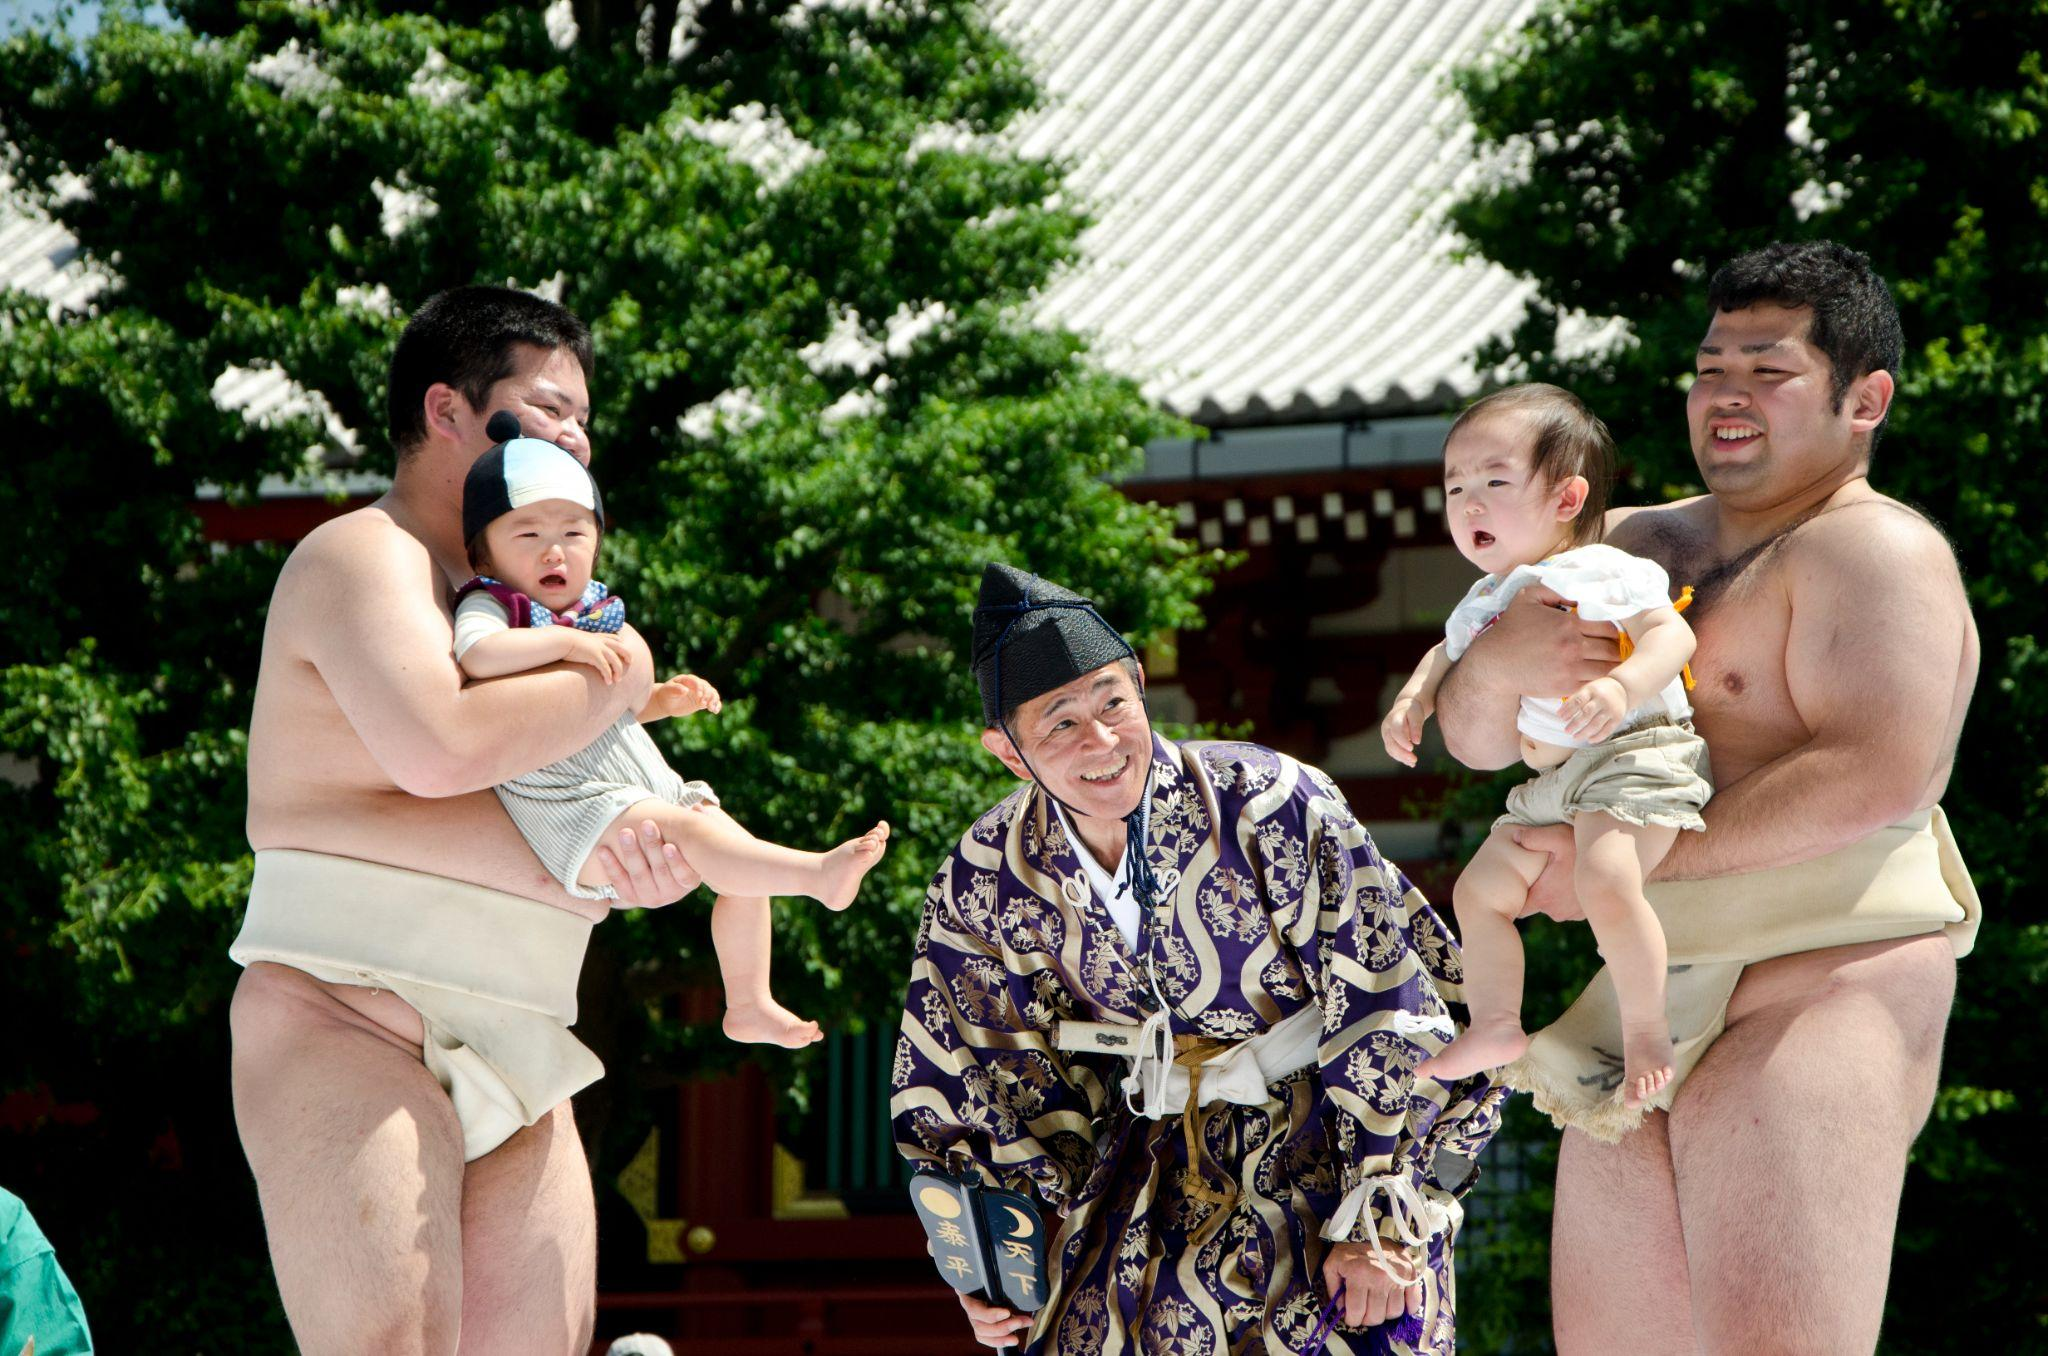 5 Bizarre Japanese Urban Legends and Traditions